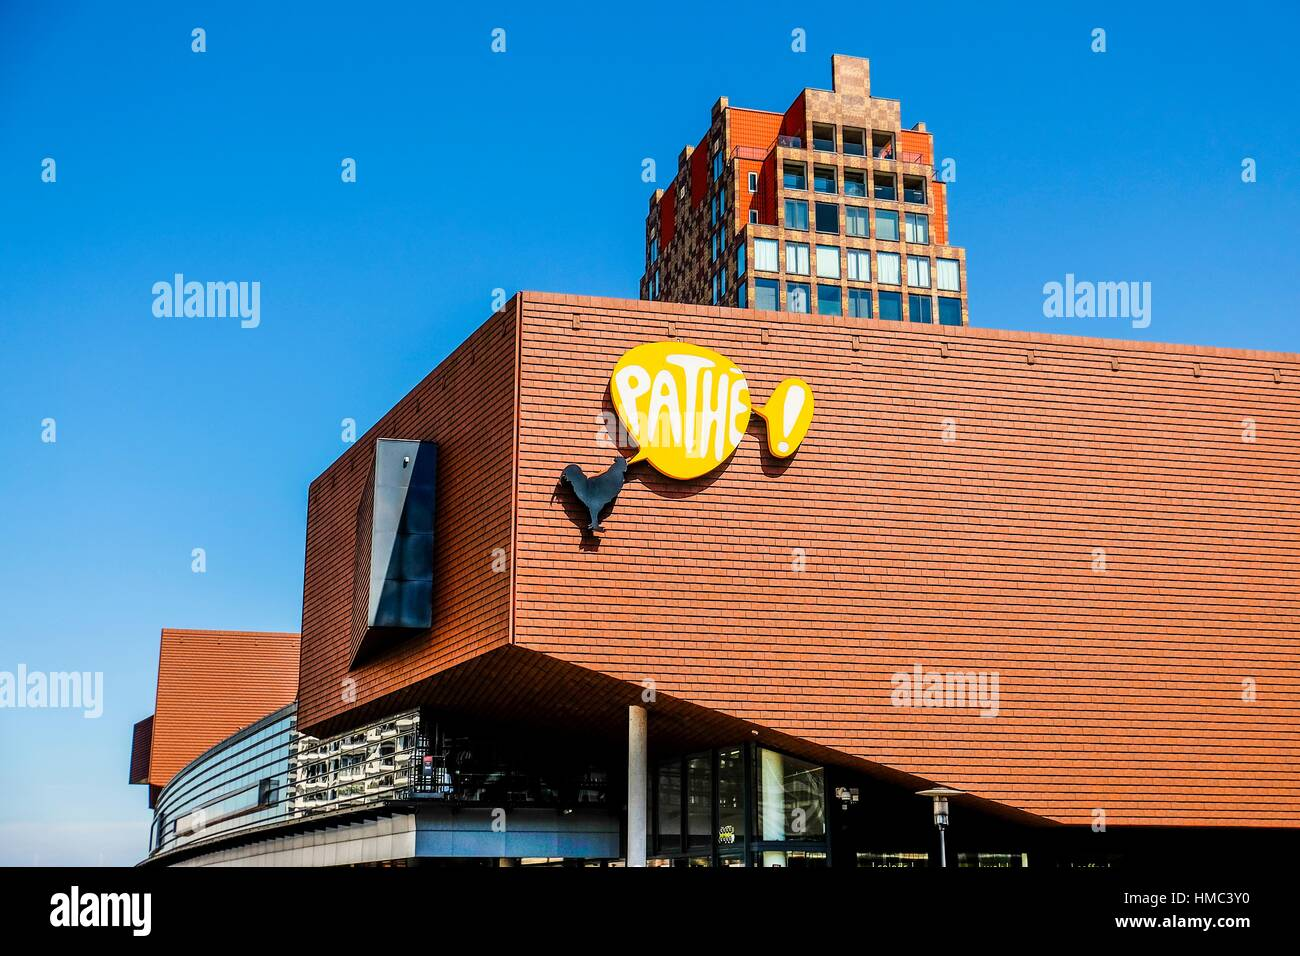 Pathe cinema at the city center masterplan by Soeters Van Eldonk architects, Zaandam, the Netherlands. - Stock Image